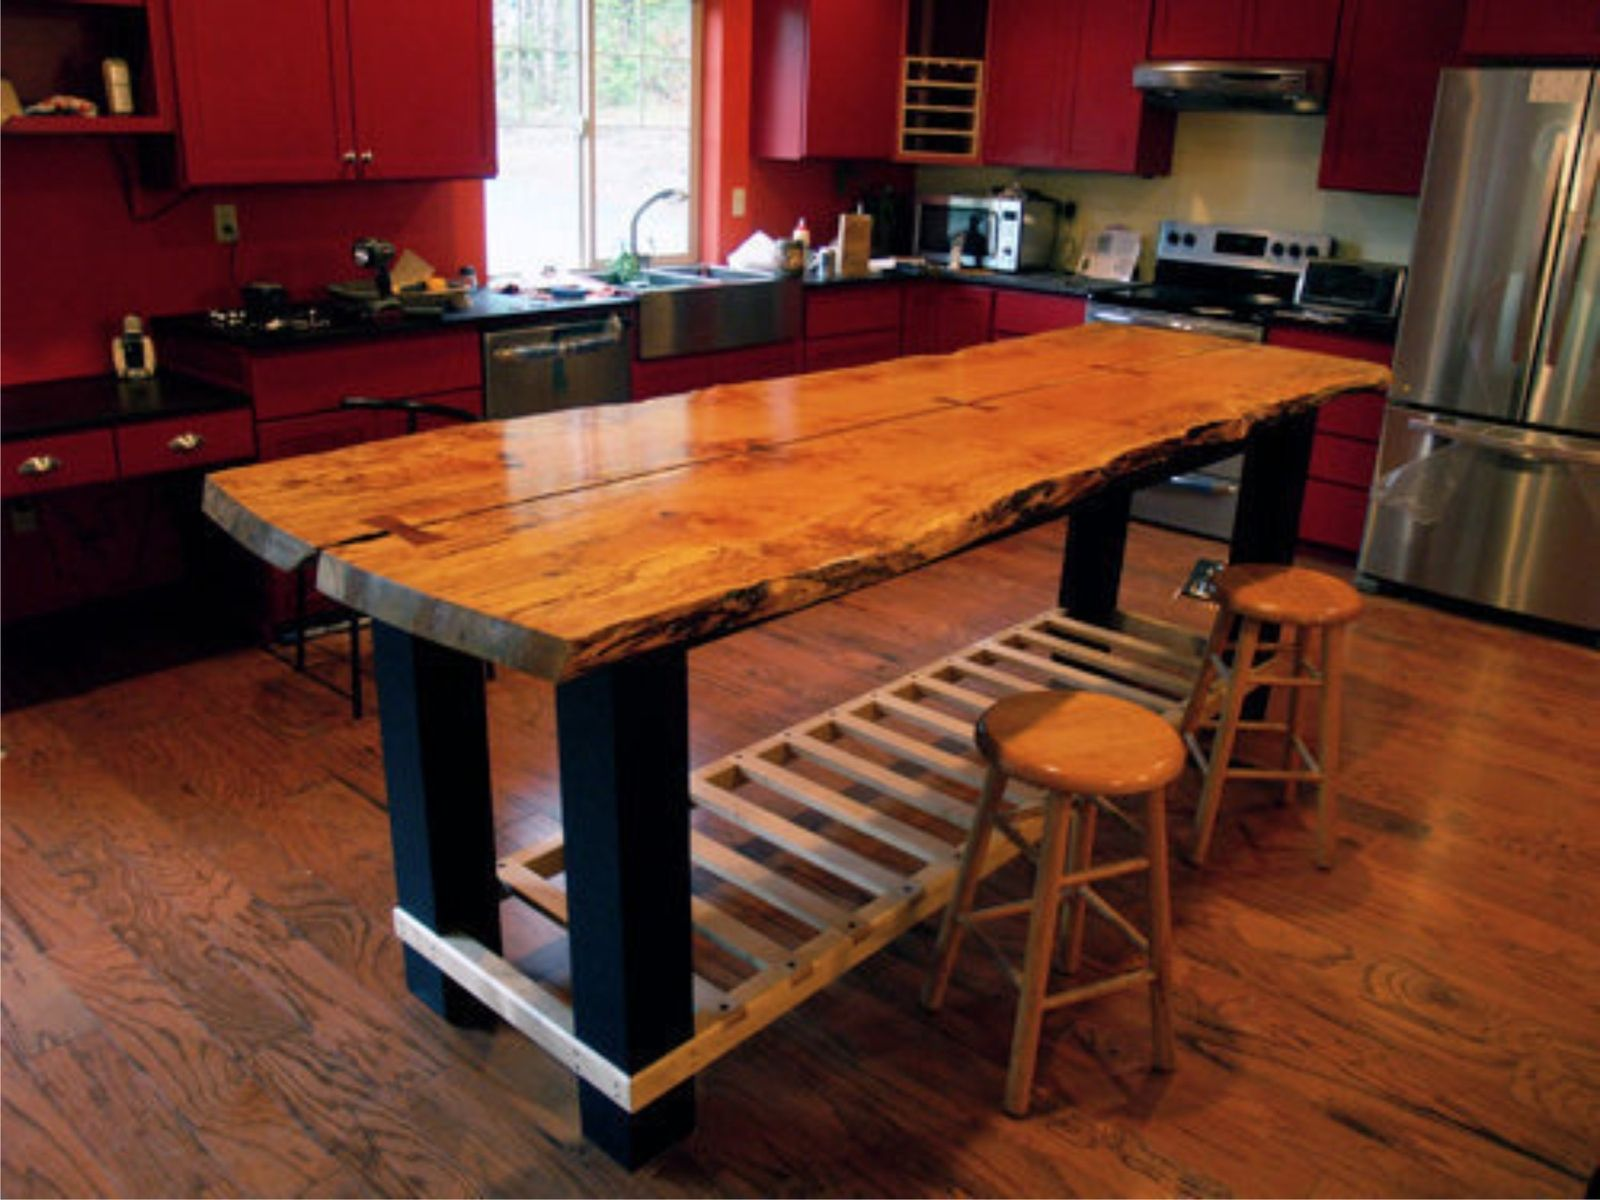 Handmade custom island table by jeffrey coleson art and for Kitchen table designs plans